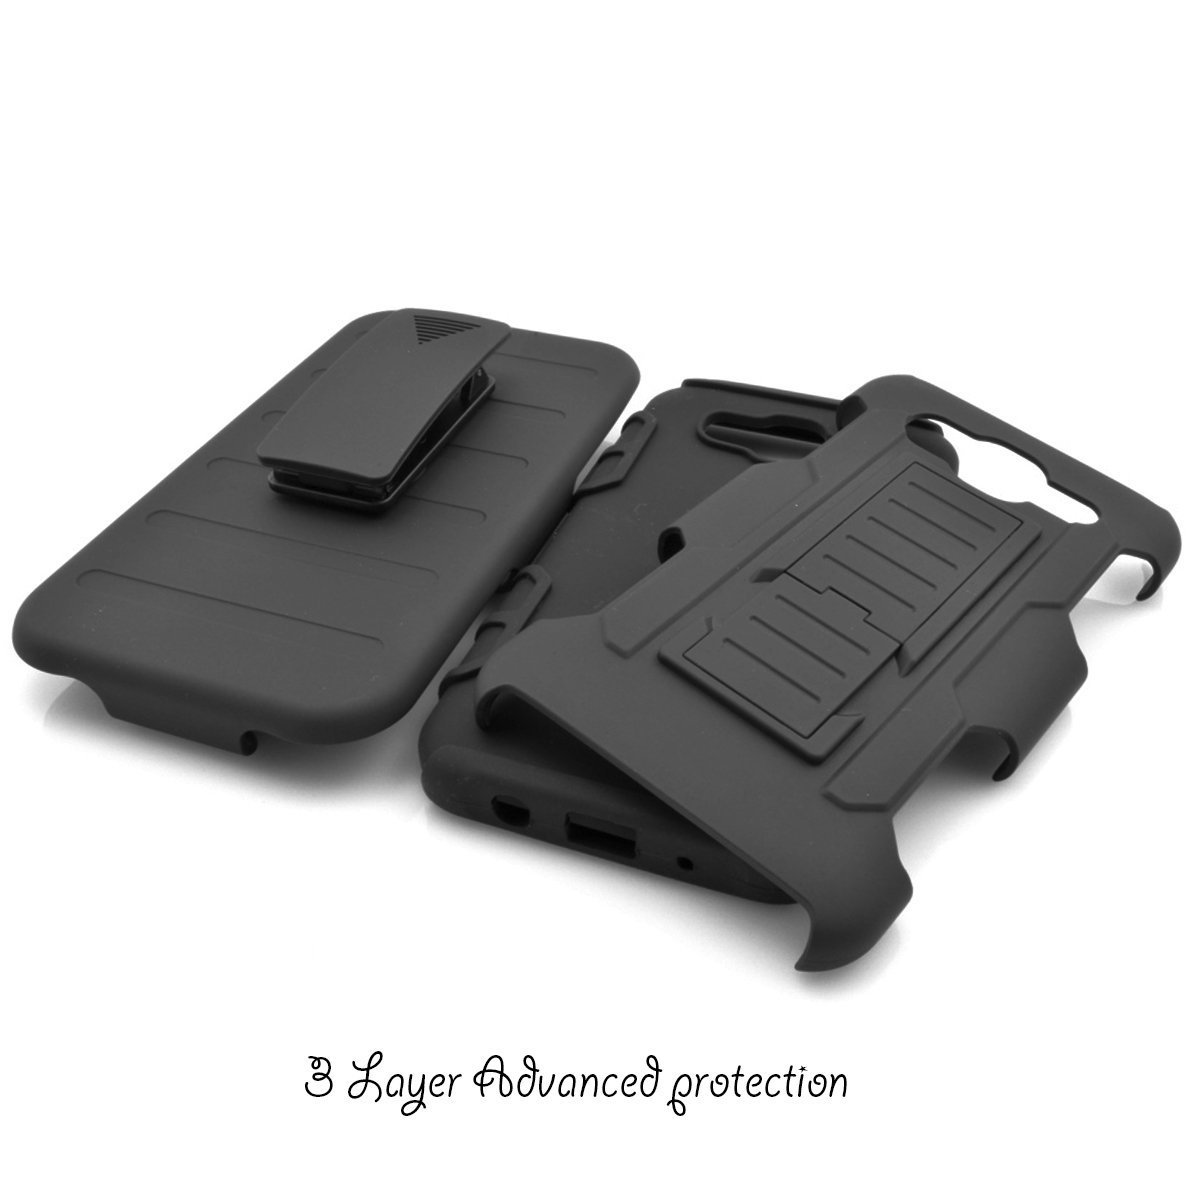 Galaxy J5 Case,Full Body Heavy Duty Protection Shock AbsorbingLocking Mechanism Holster Clip Cover For ...